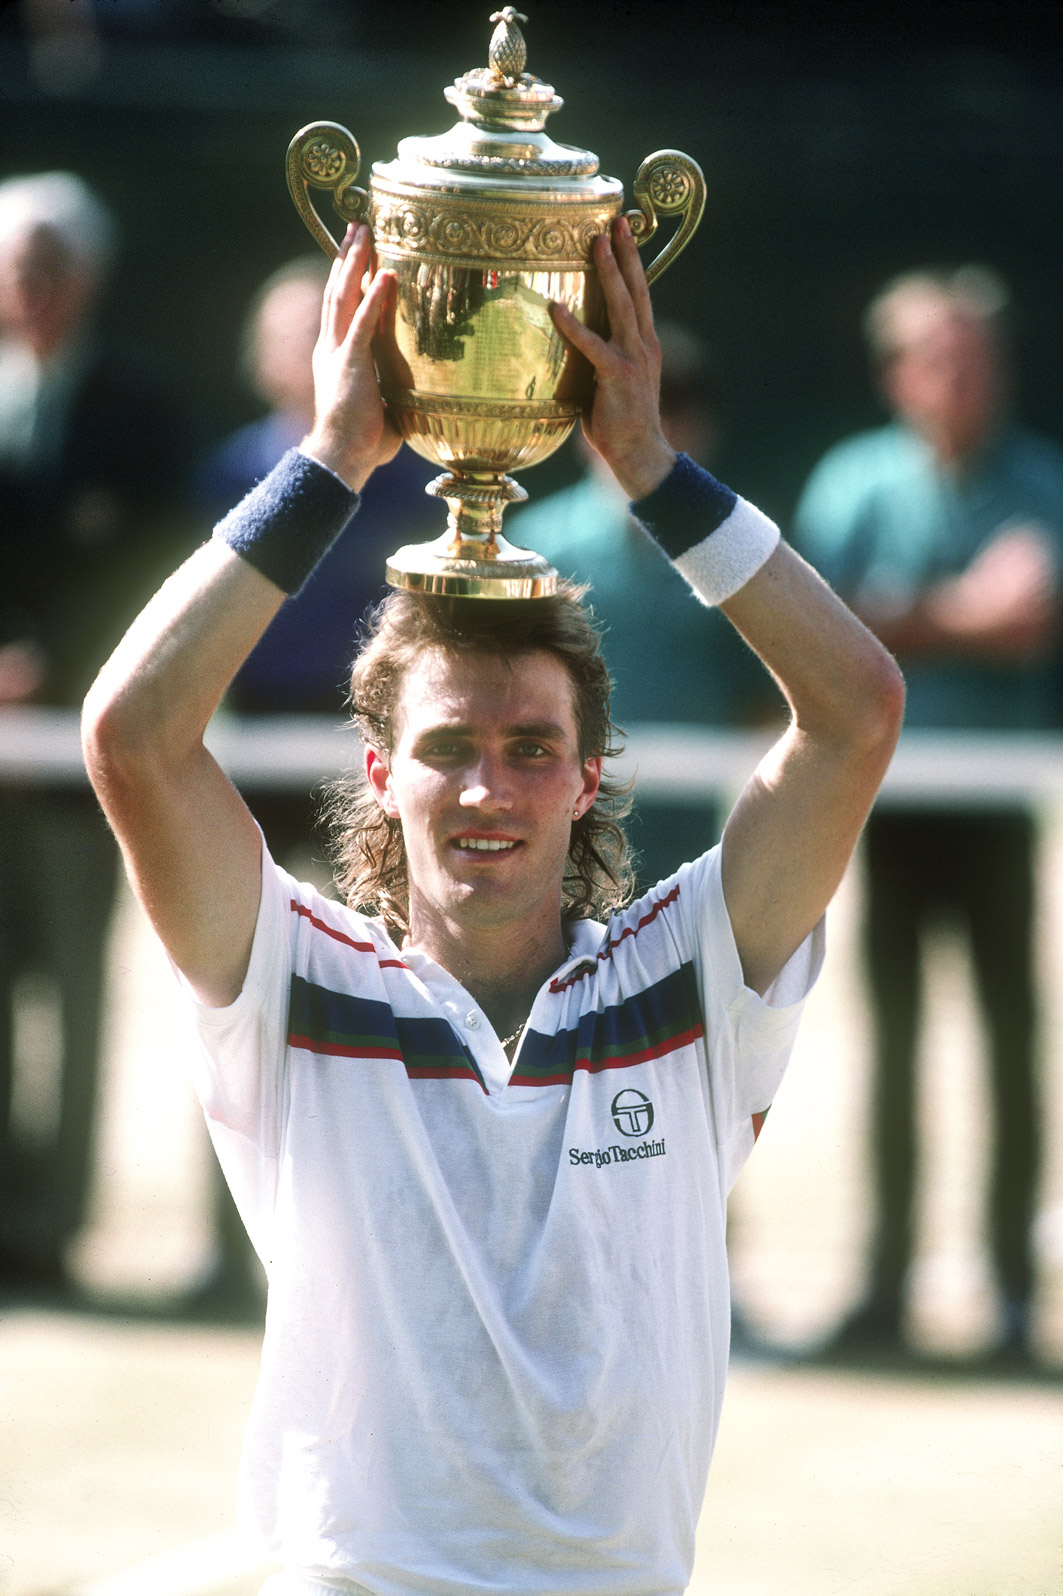 kenneth in the (212): The 100 Hottest Male Tennis Players of the Open Era